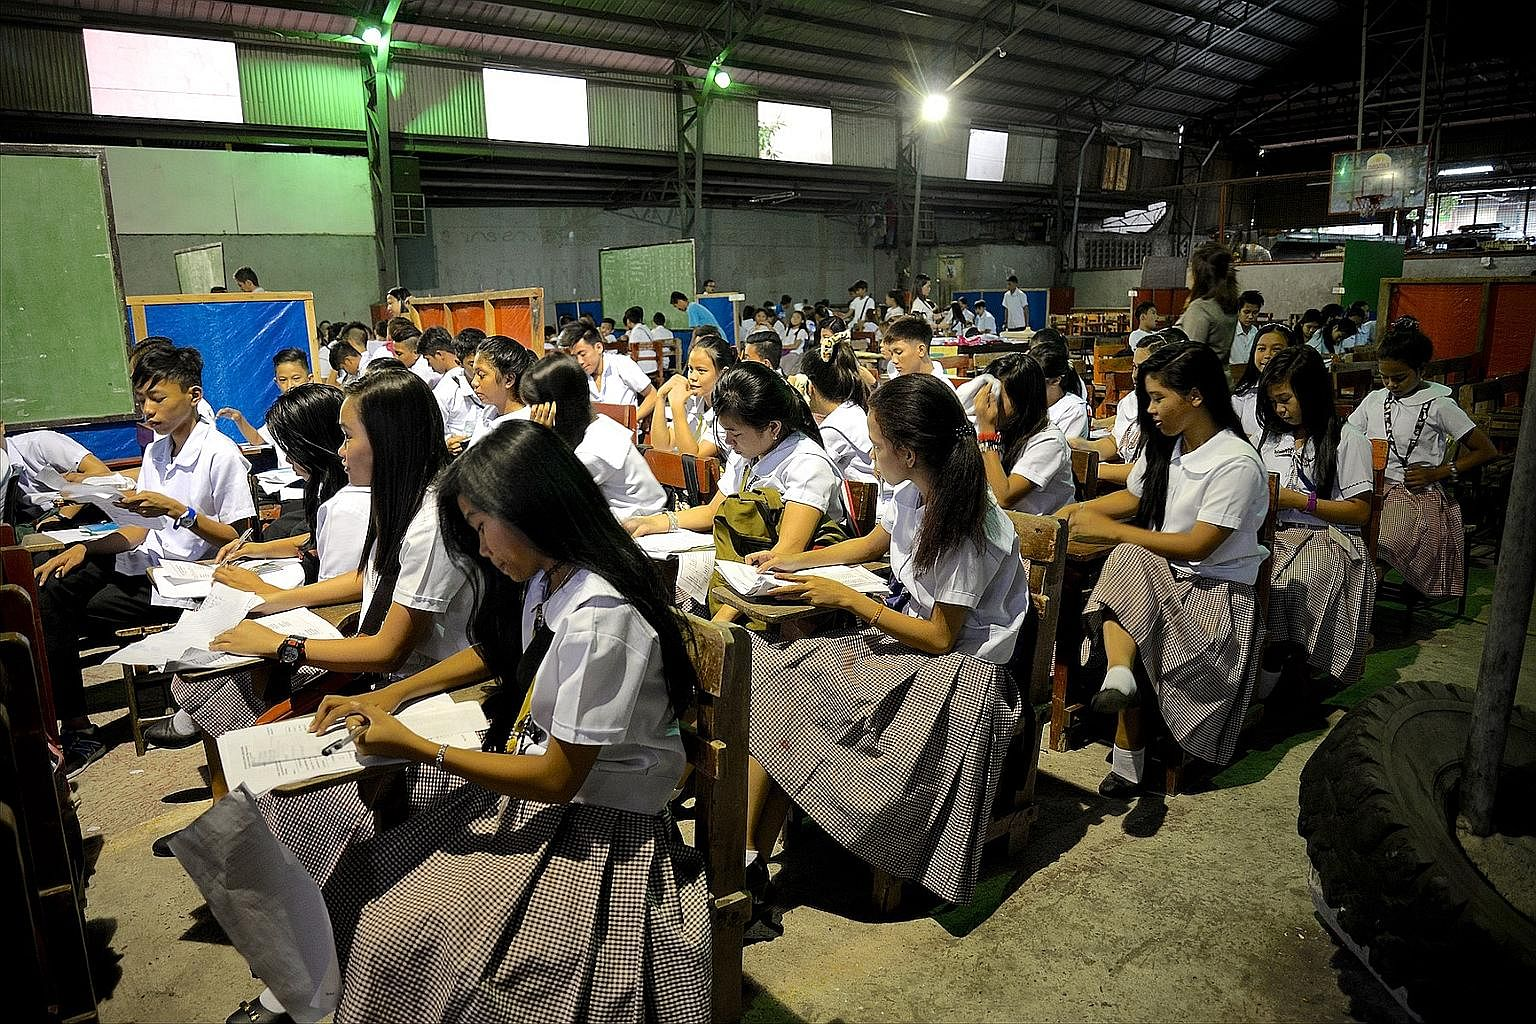 Students at the San Rafael Technological School in Navotas city, just an hour north of Manila, having classes inside a gymnasium. A new school building is being constructed that will give the 1,008 students 16 classrooms, double what they had before.